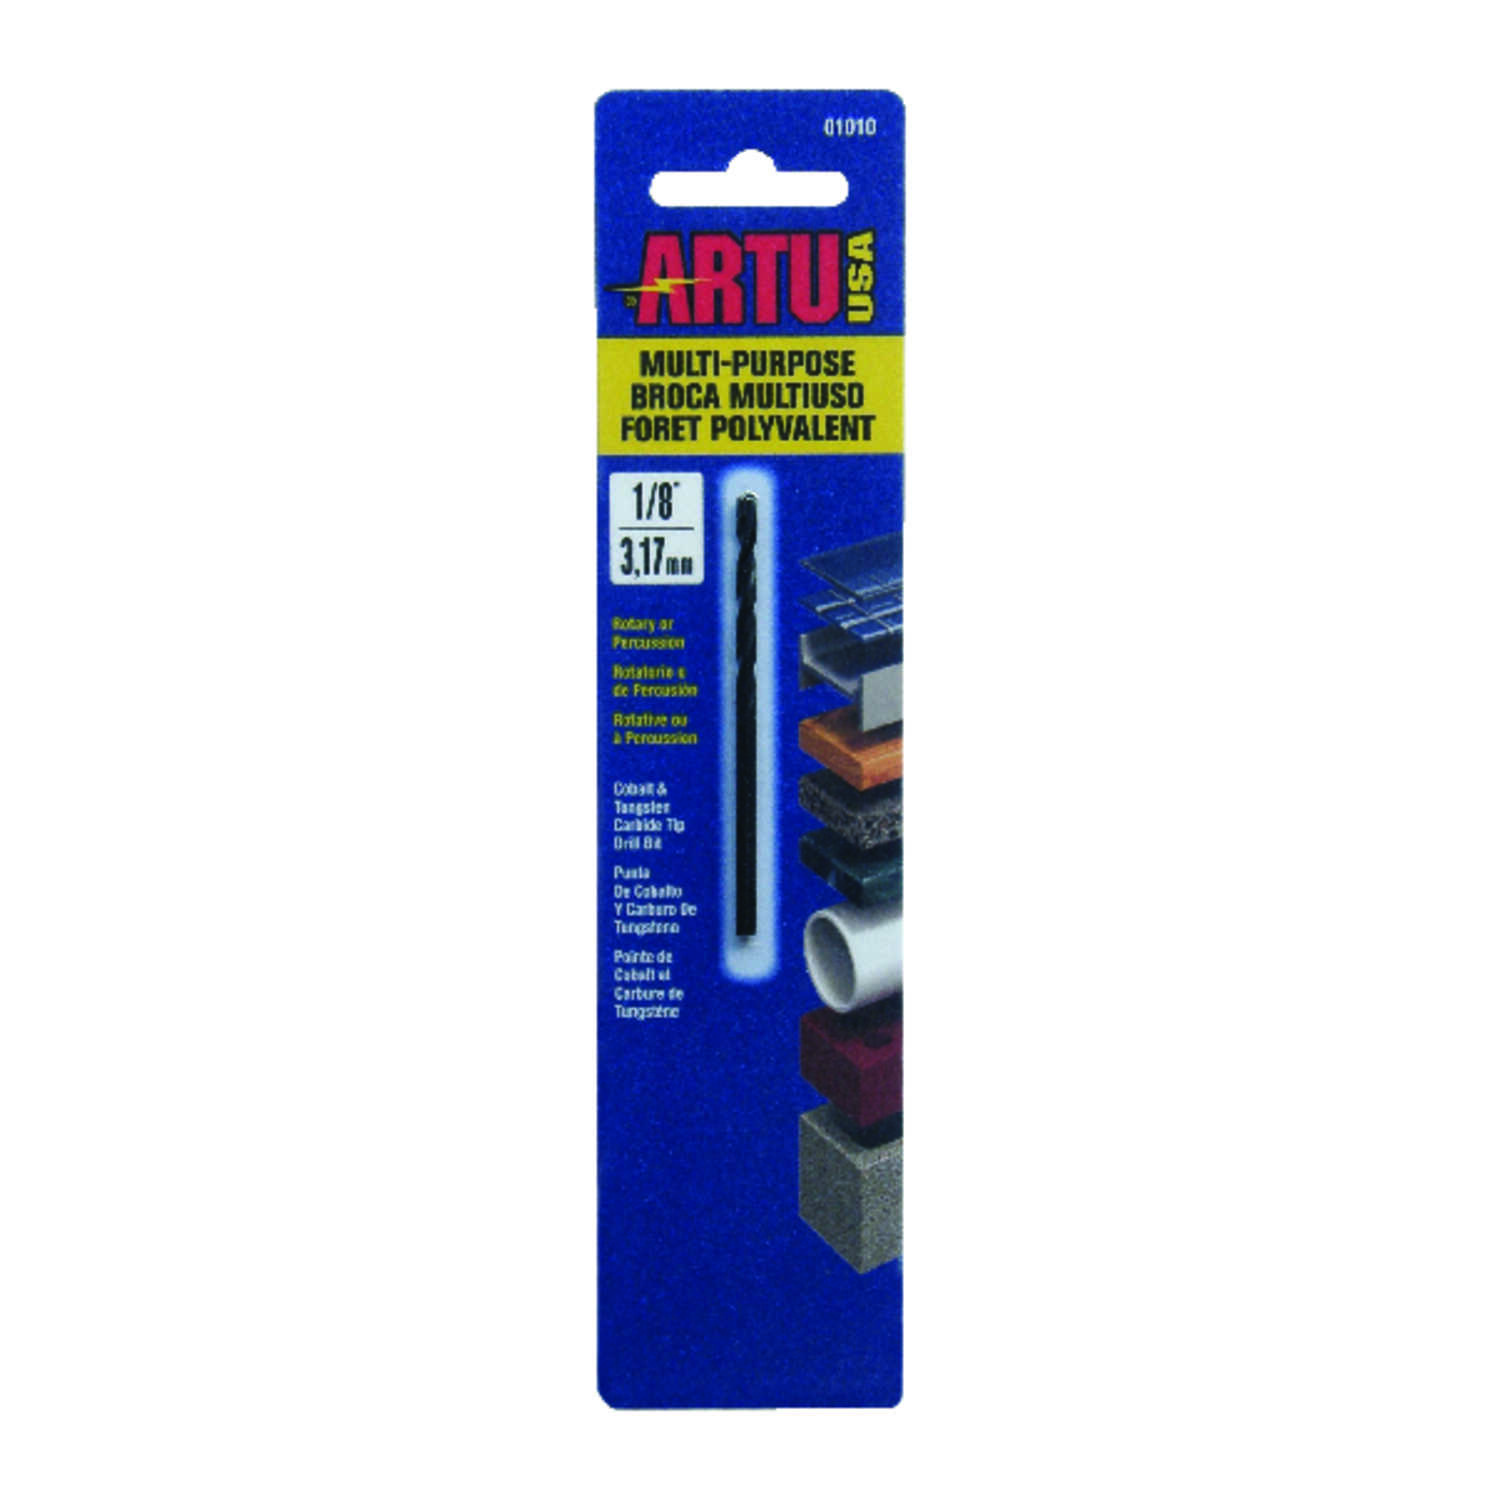 ARTU  1/8 in. Dia. x 2-5/8 in. L Tungsten Carbide Tipped  General Purpose Drill Bit  1/8 in. Round S